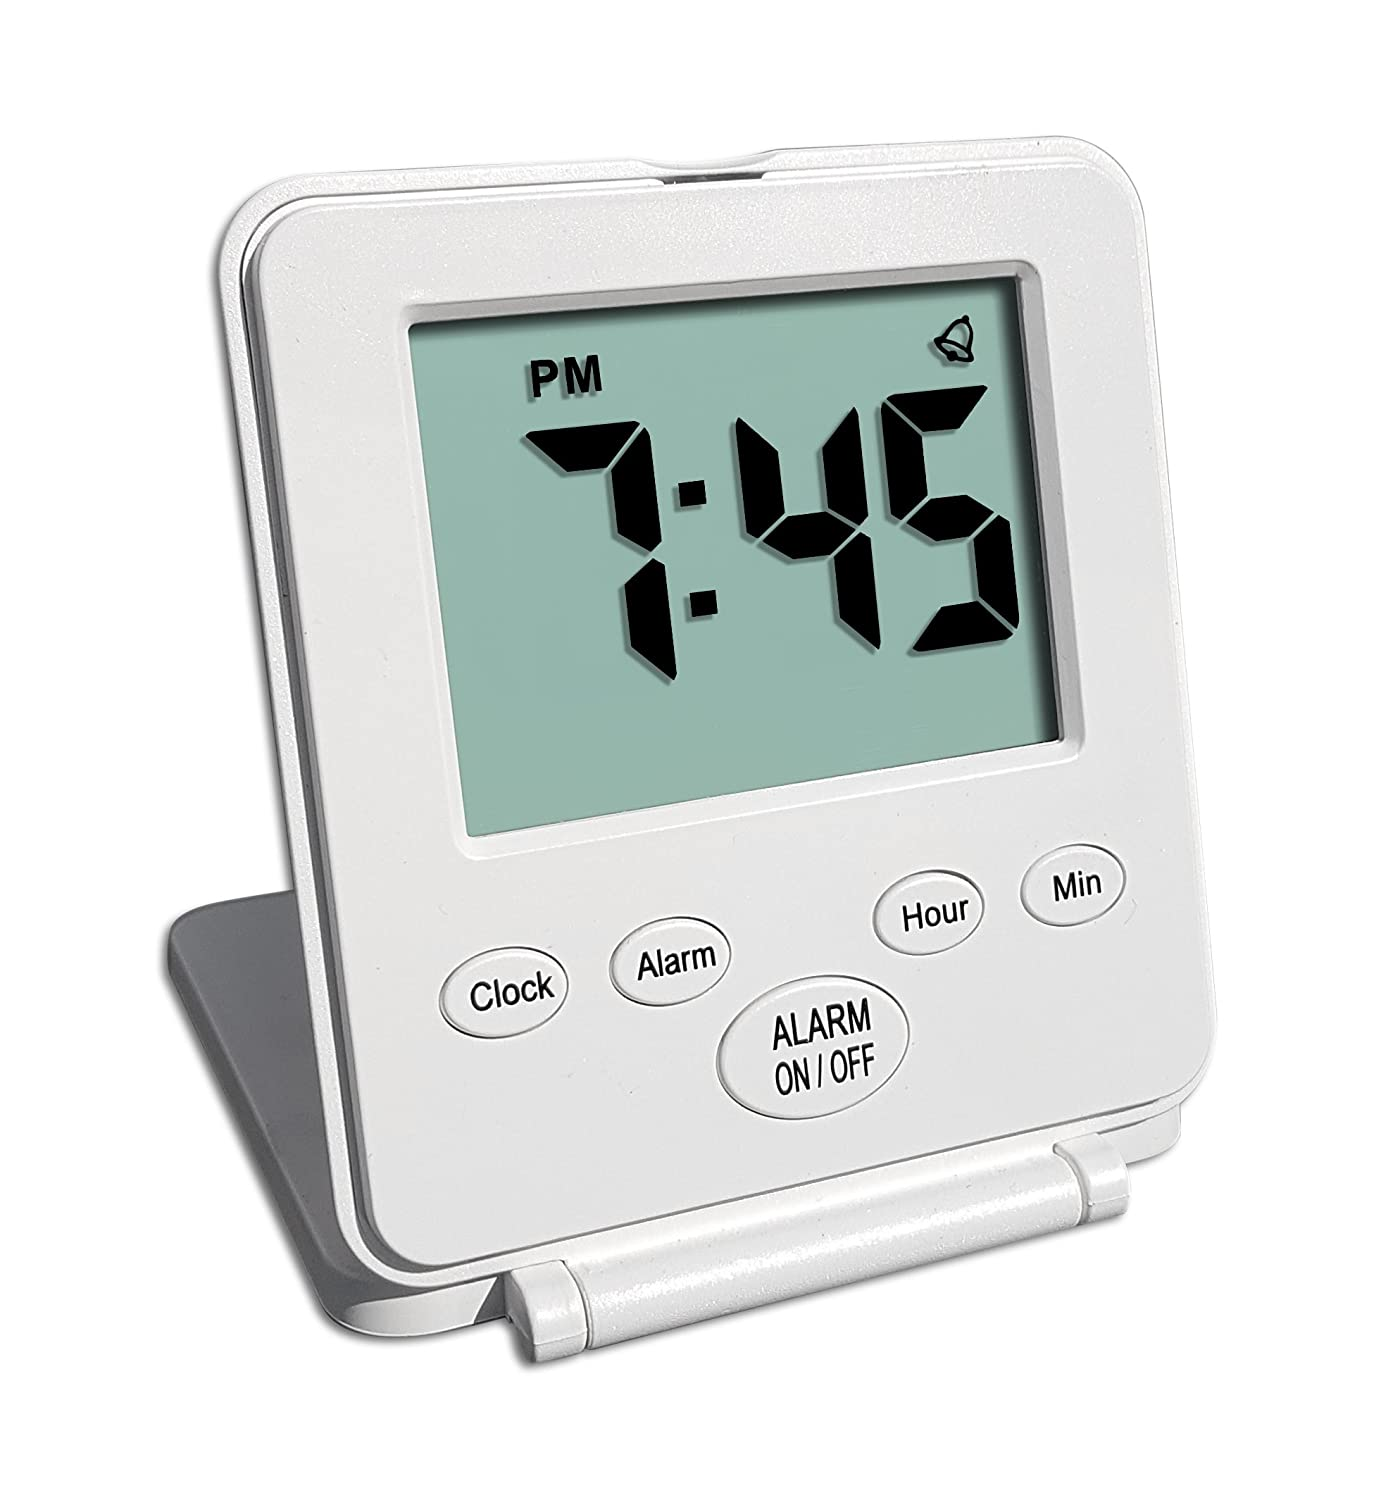 Digital Travel Alarm Clock - No Bells, No Whistles, Simple Basic Operation, Loud Alarm, Snooze, Small and Light, ON/Off Switch, 2 AAA Battery Powered, White